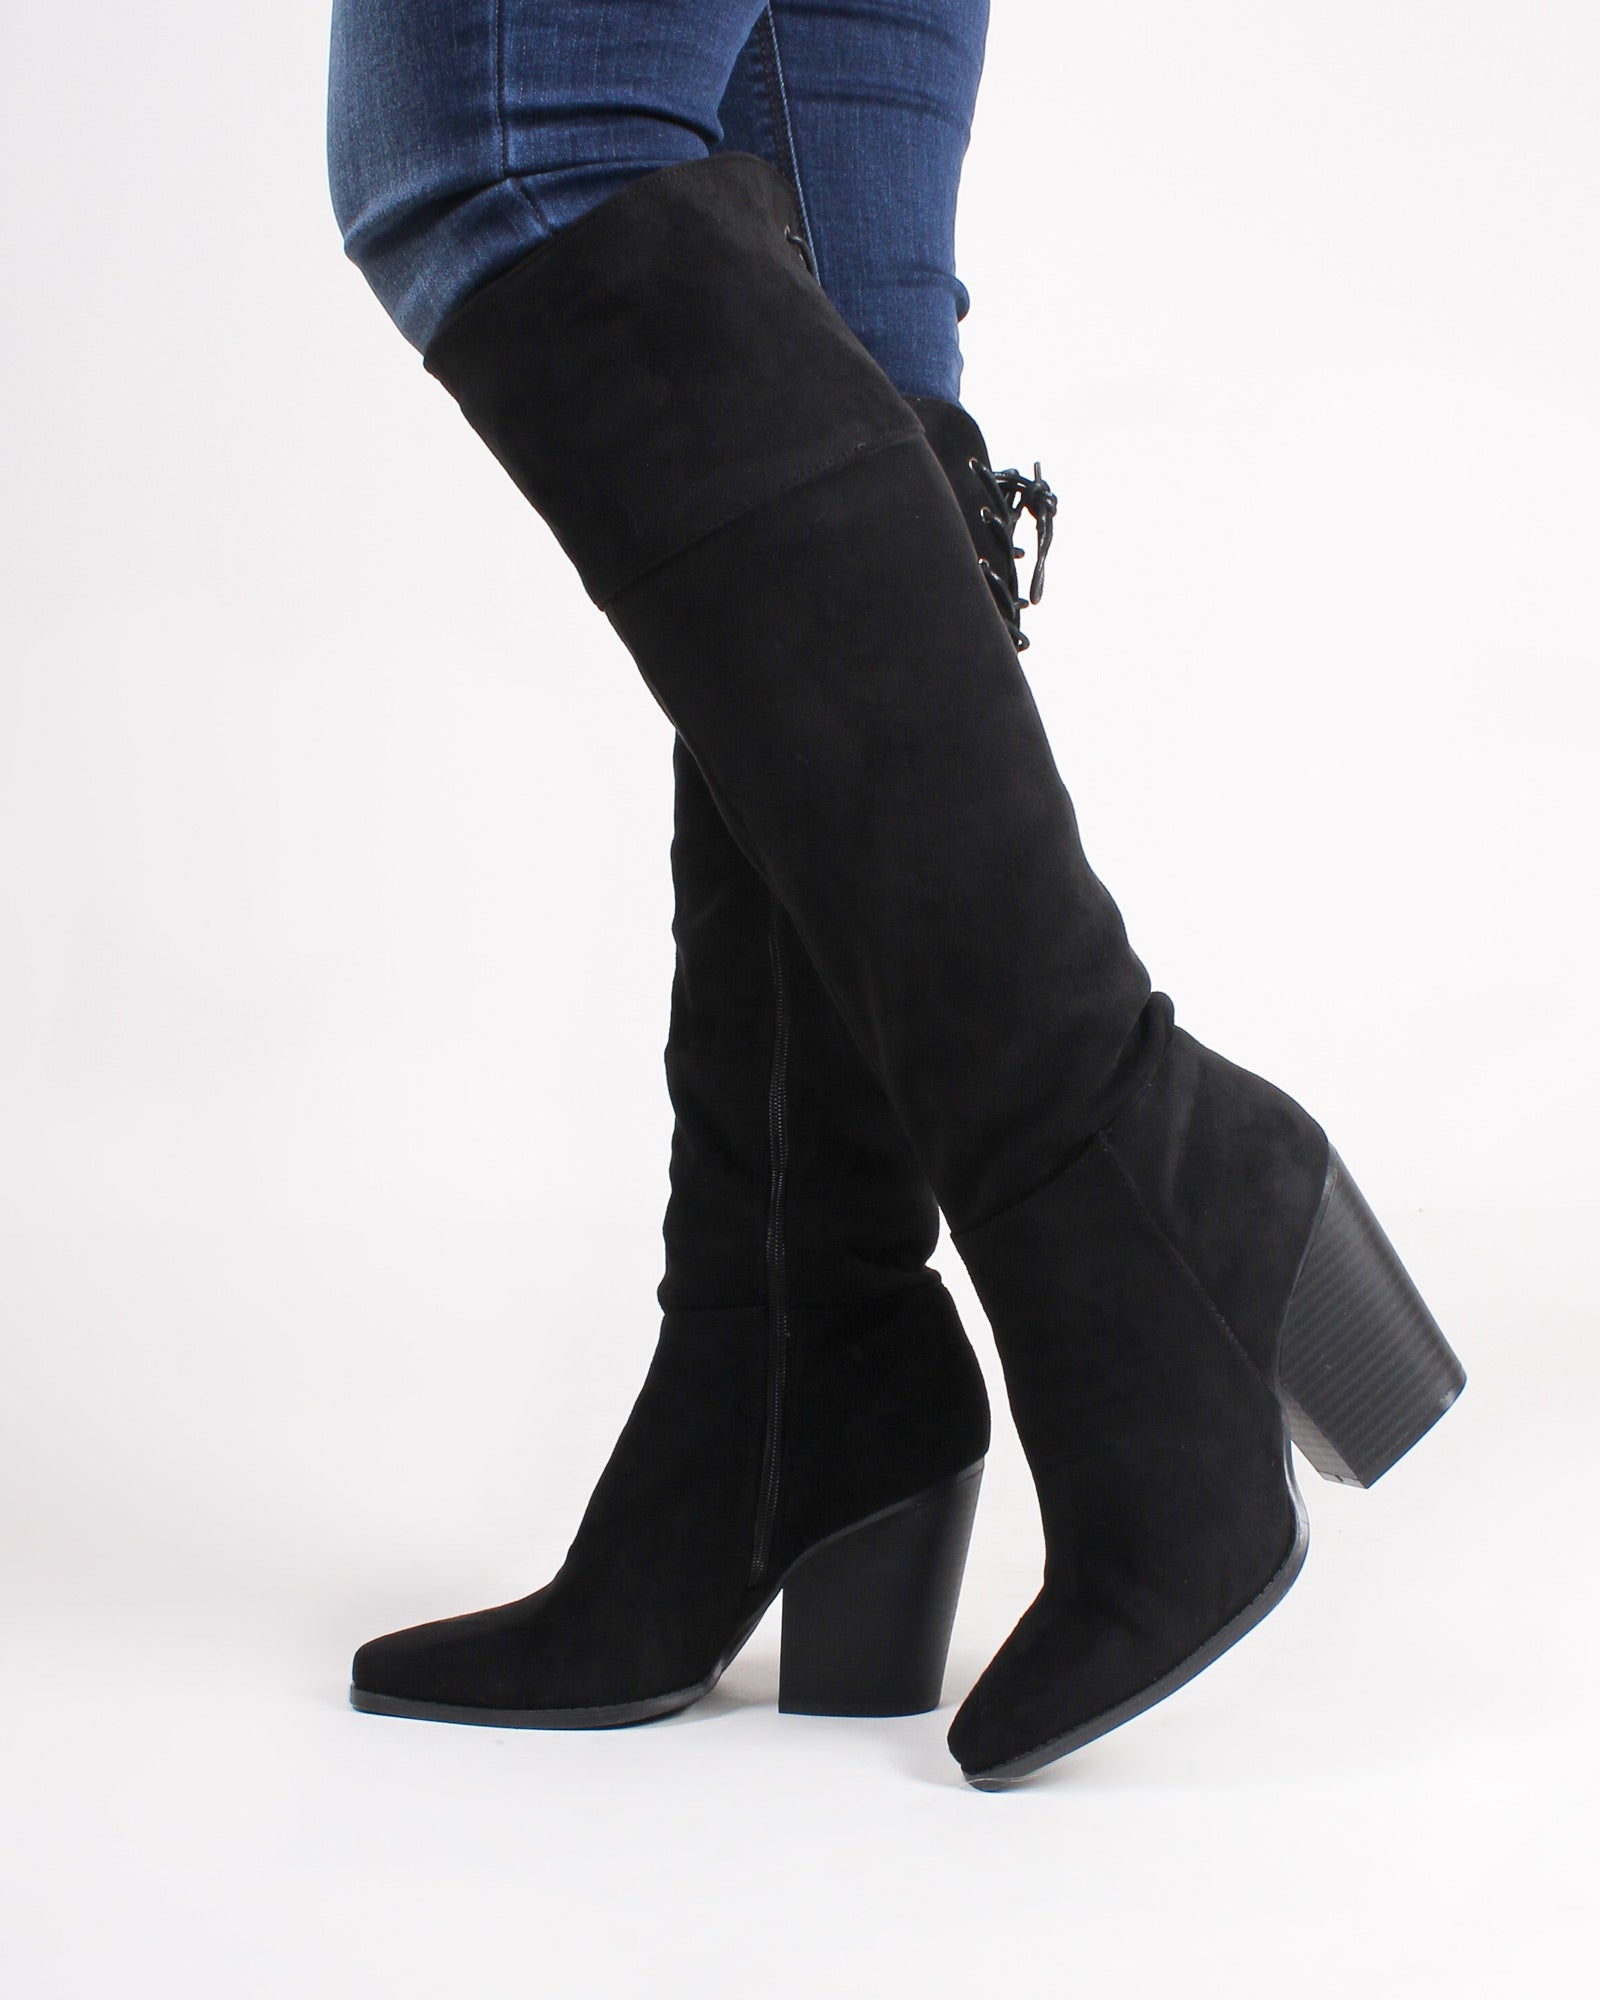 Fashion Q Shop Q Woodstock Knee High Booties (Black) SLAY-12X